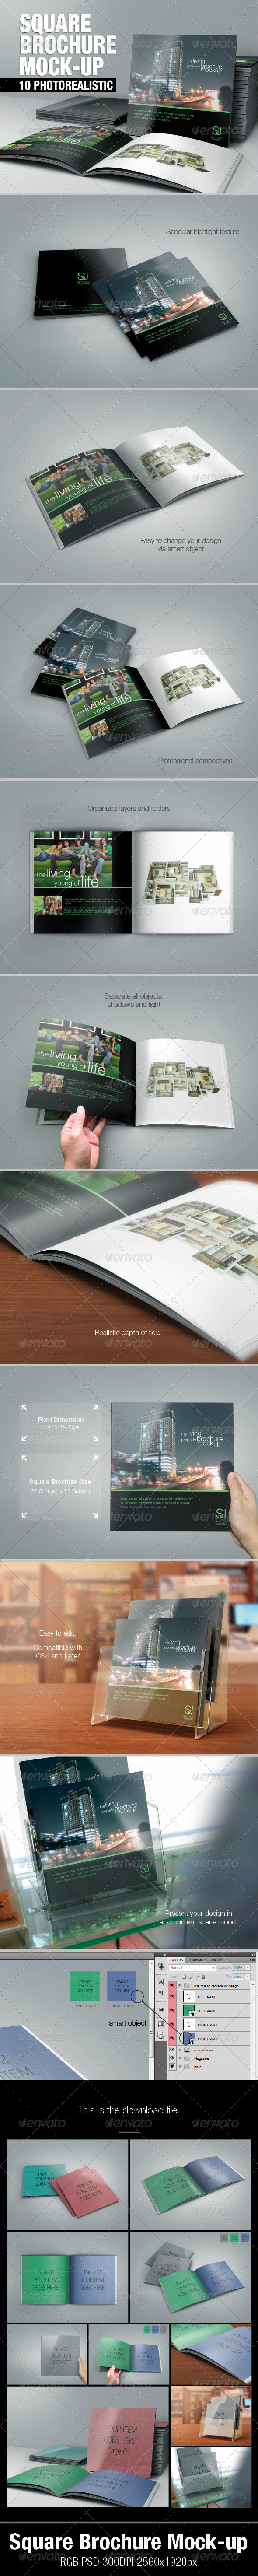 GraphicRiver Square Brochure Mock-up 5419620